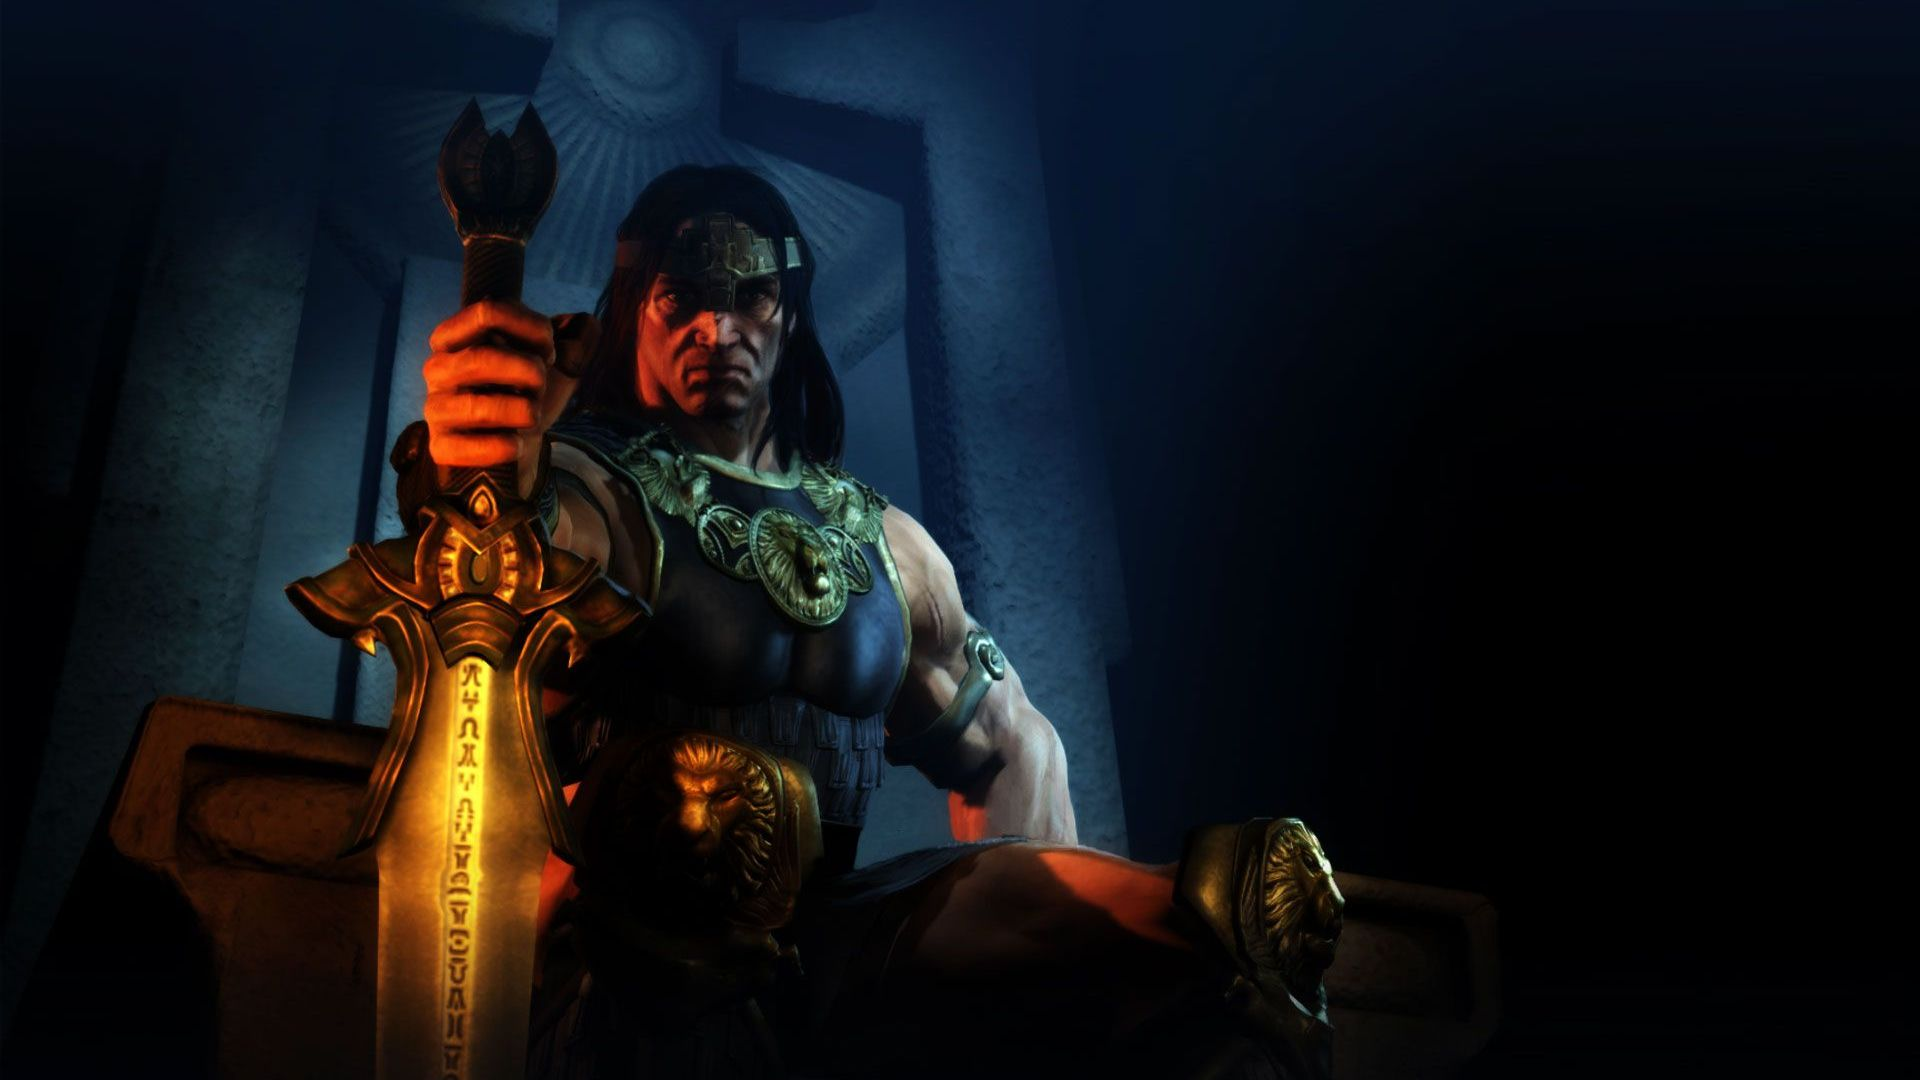 Download Age of Conan wallpaper 1920x1080